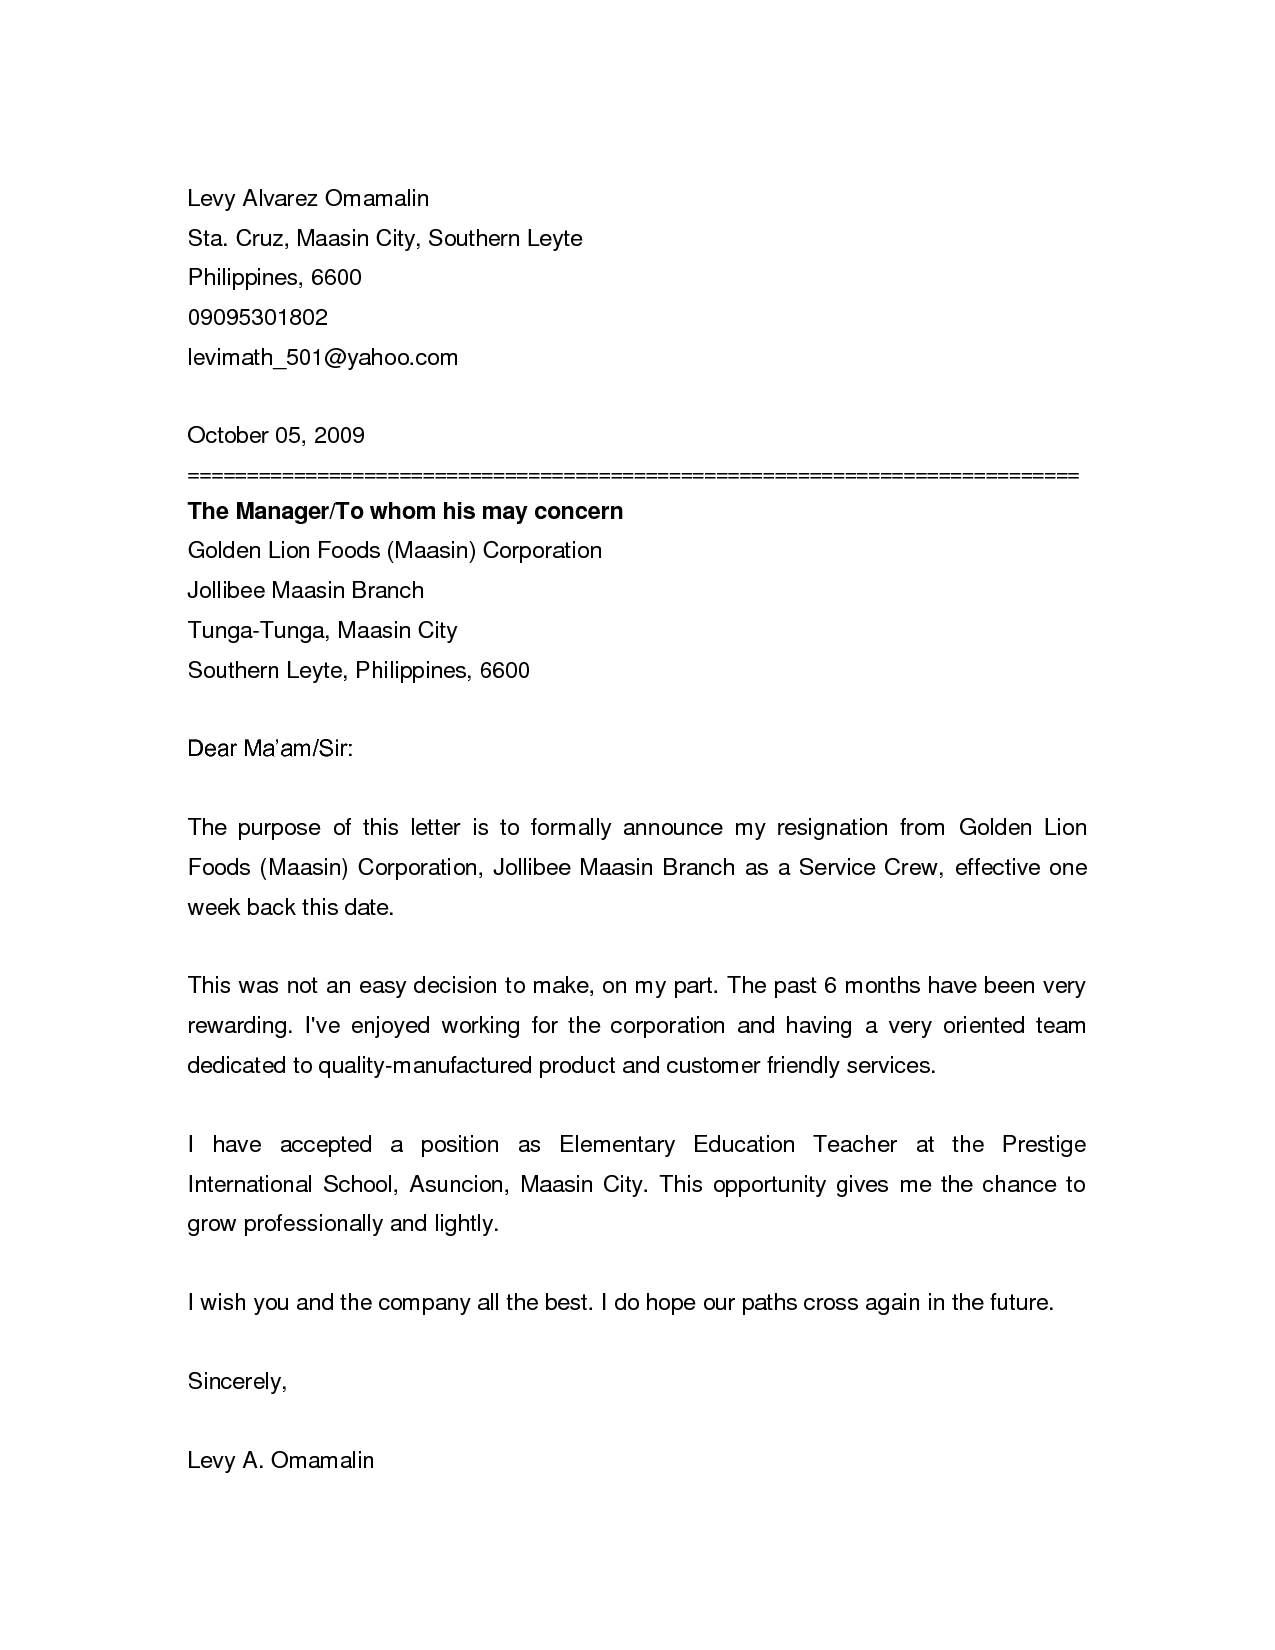 Resignation announcement letter this resignation announcement – Resignation Announcement Template